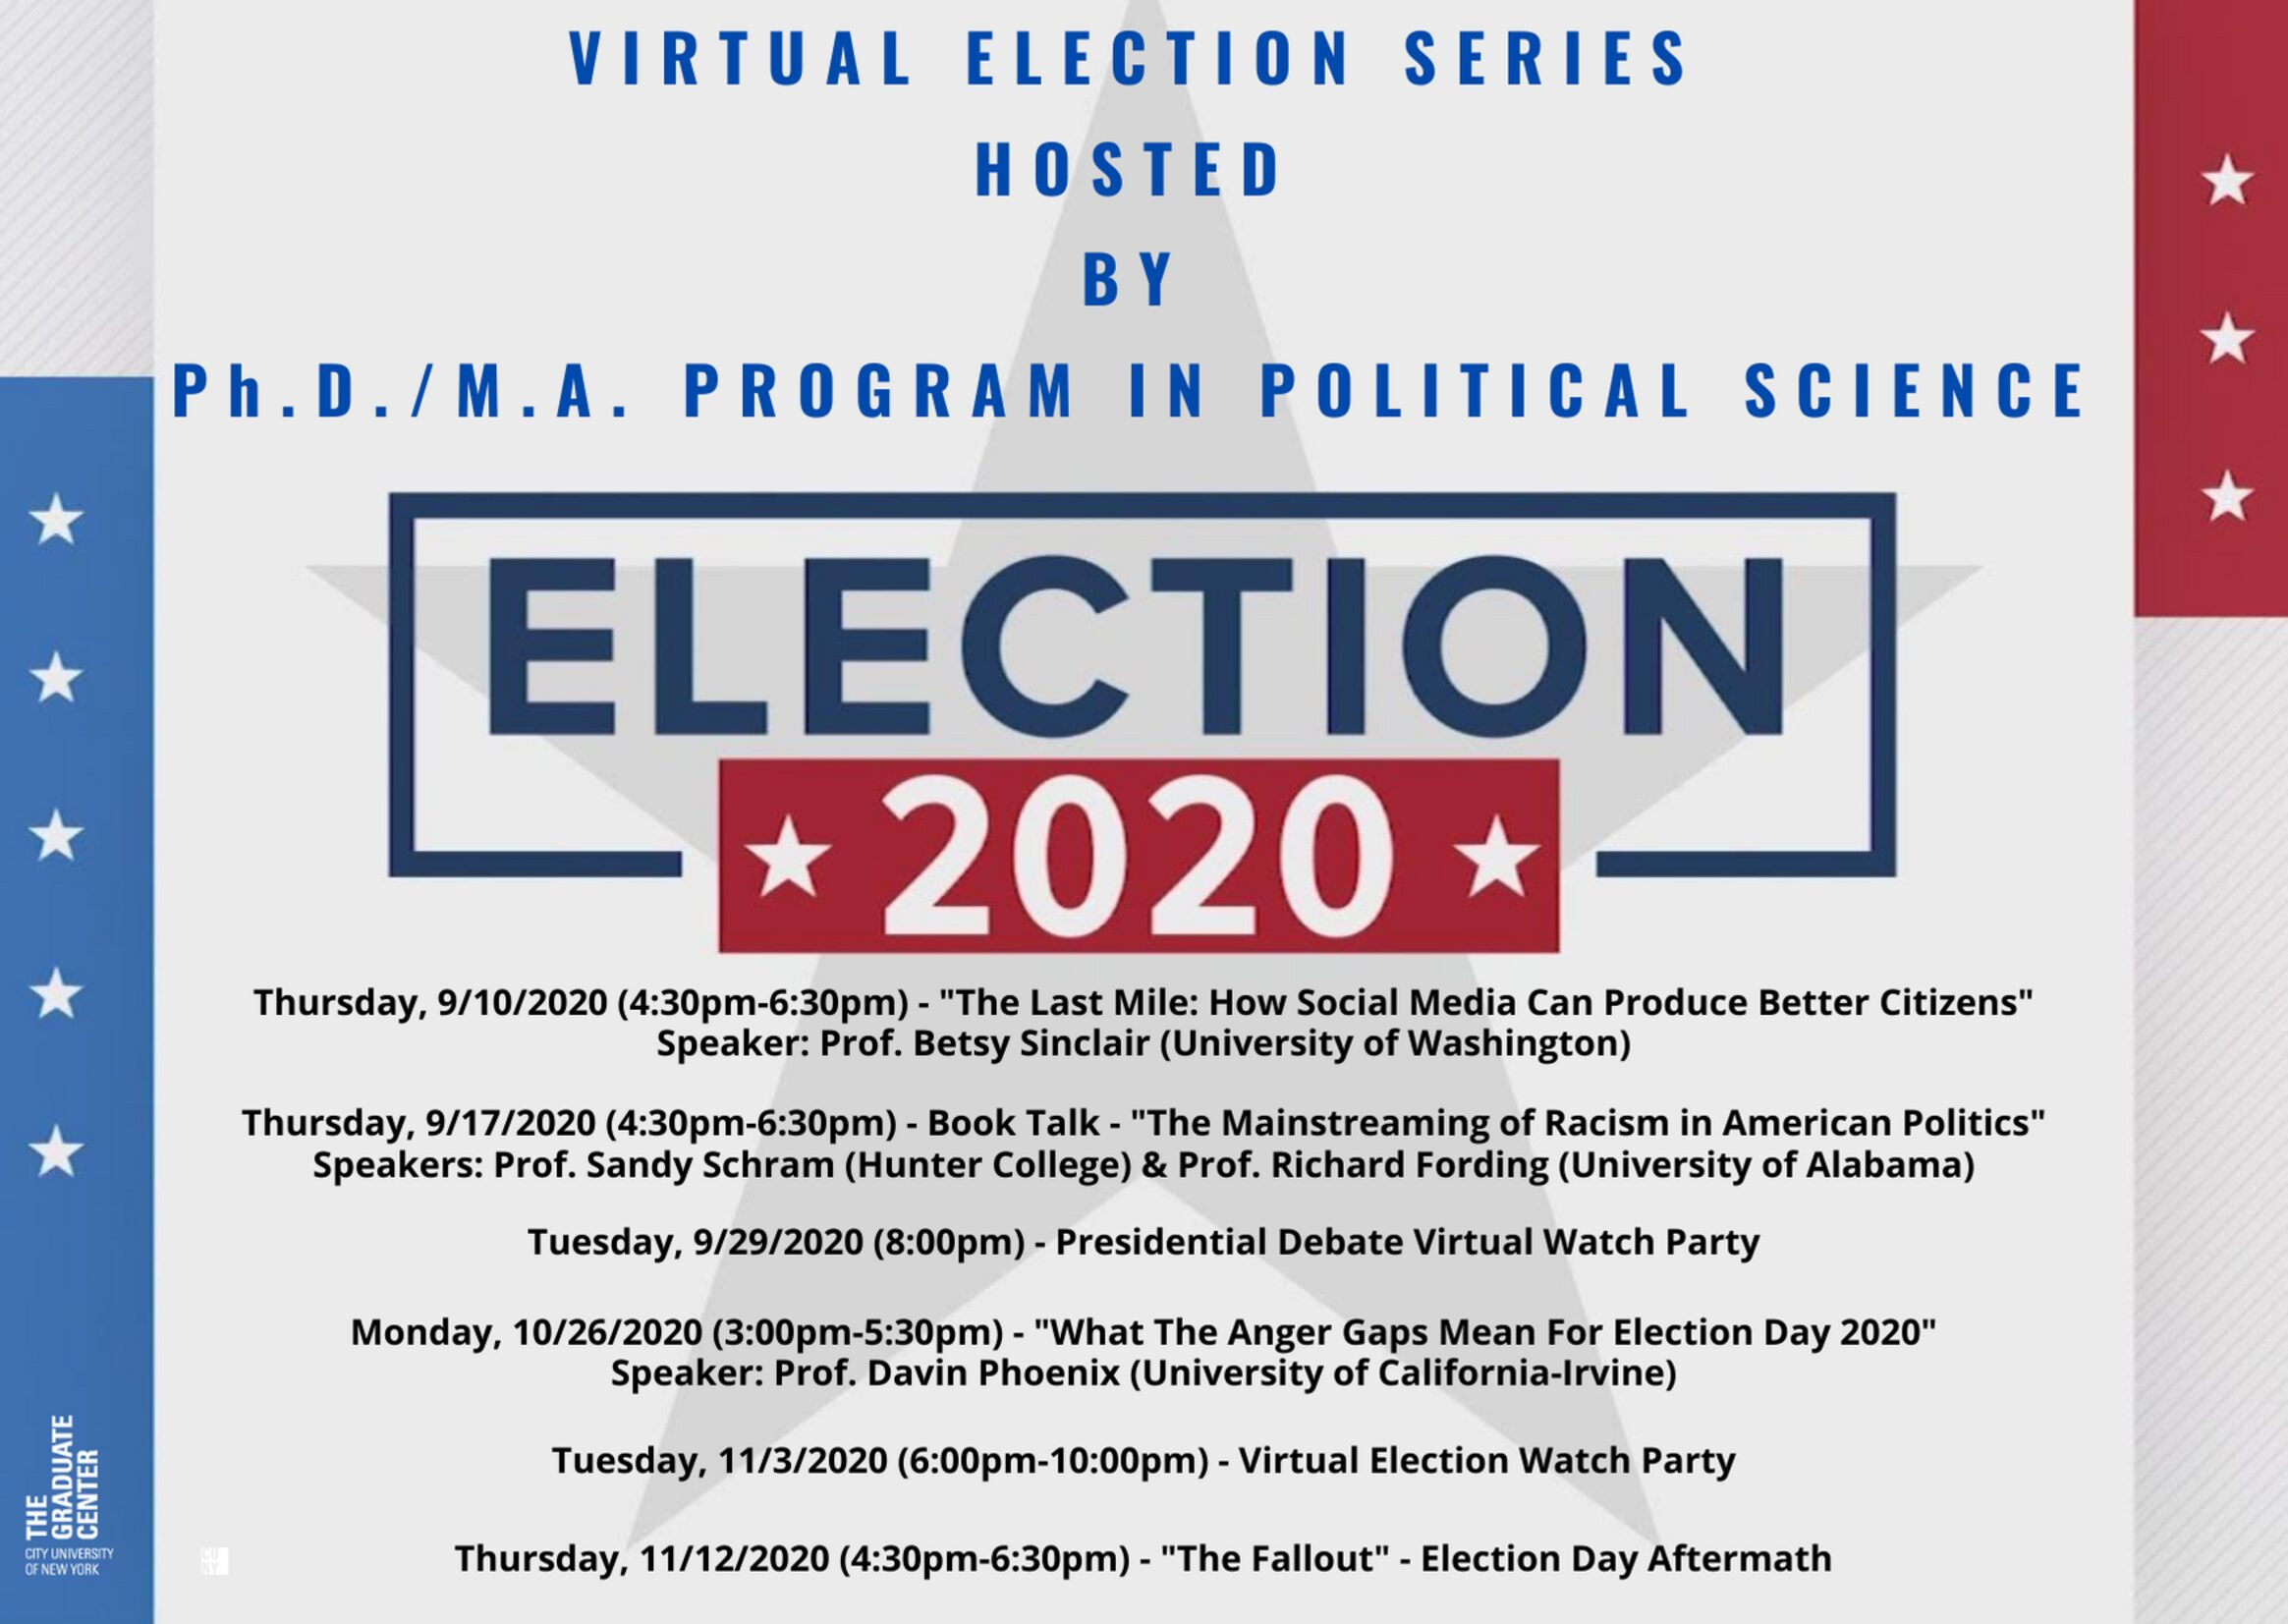 Election 2020: Unprecedented Politics, New Challenges for Political Science